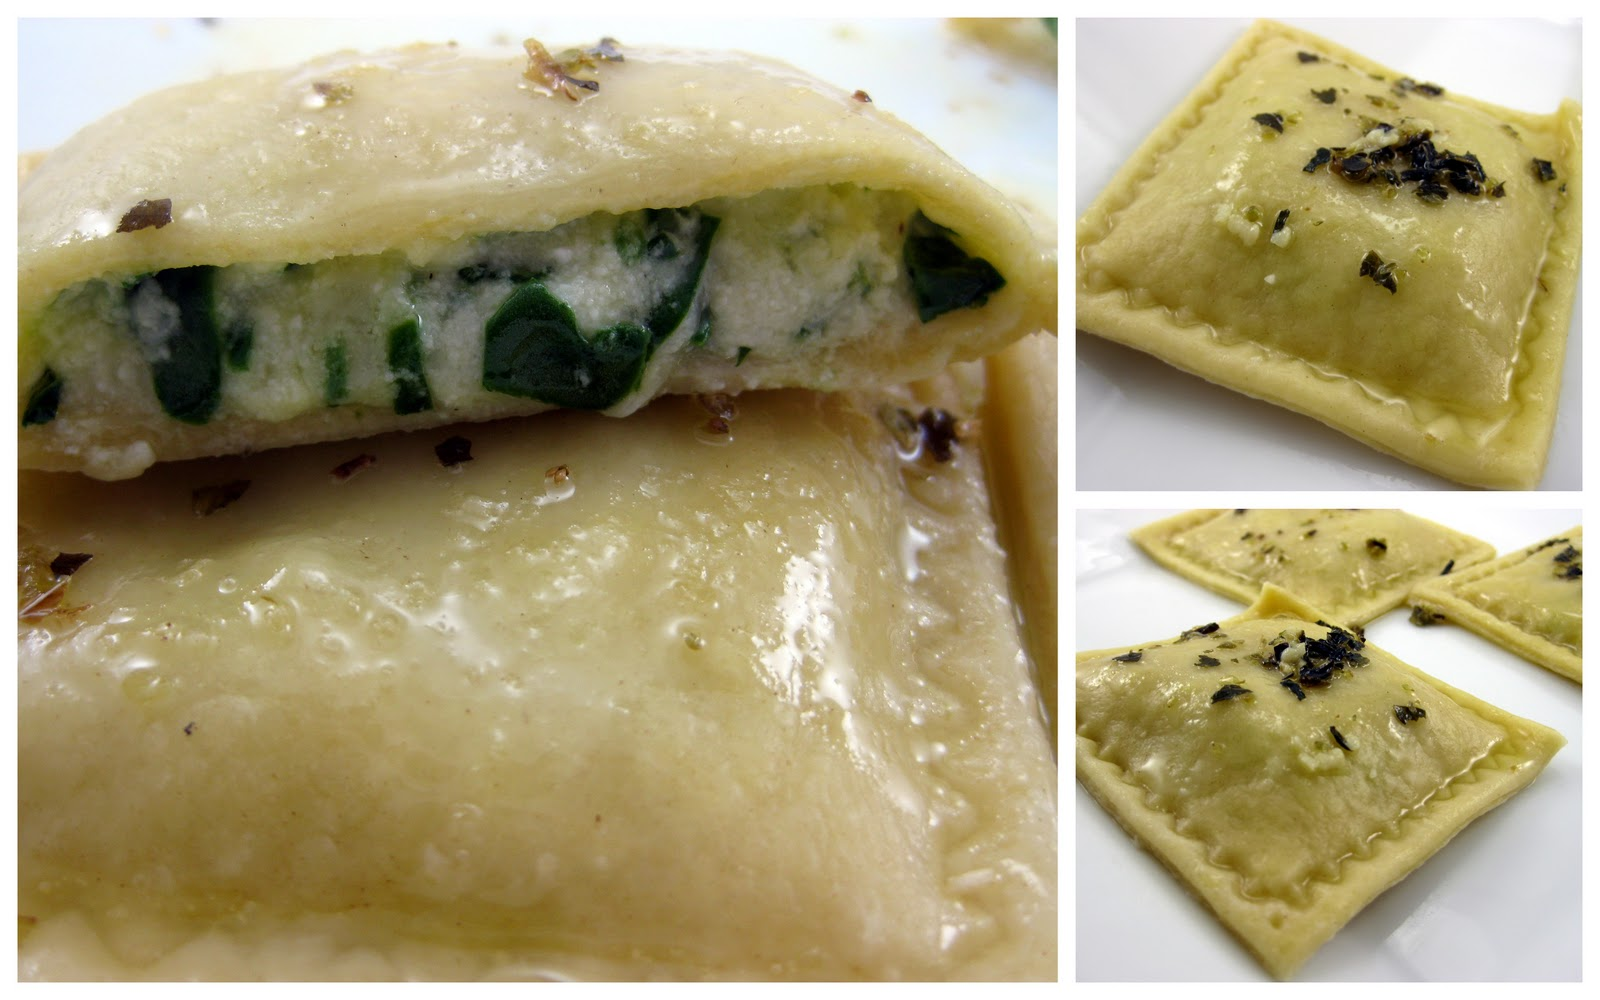 ... Food Blog: Spinach & Three Cheese Ravioli with Garlic Butter Sauce